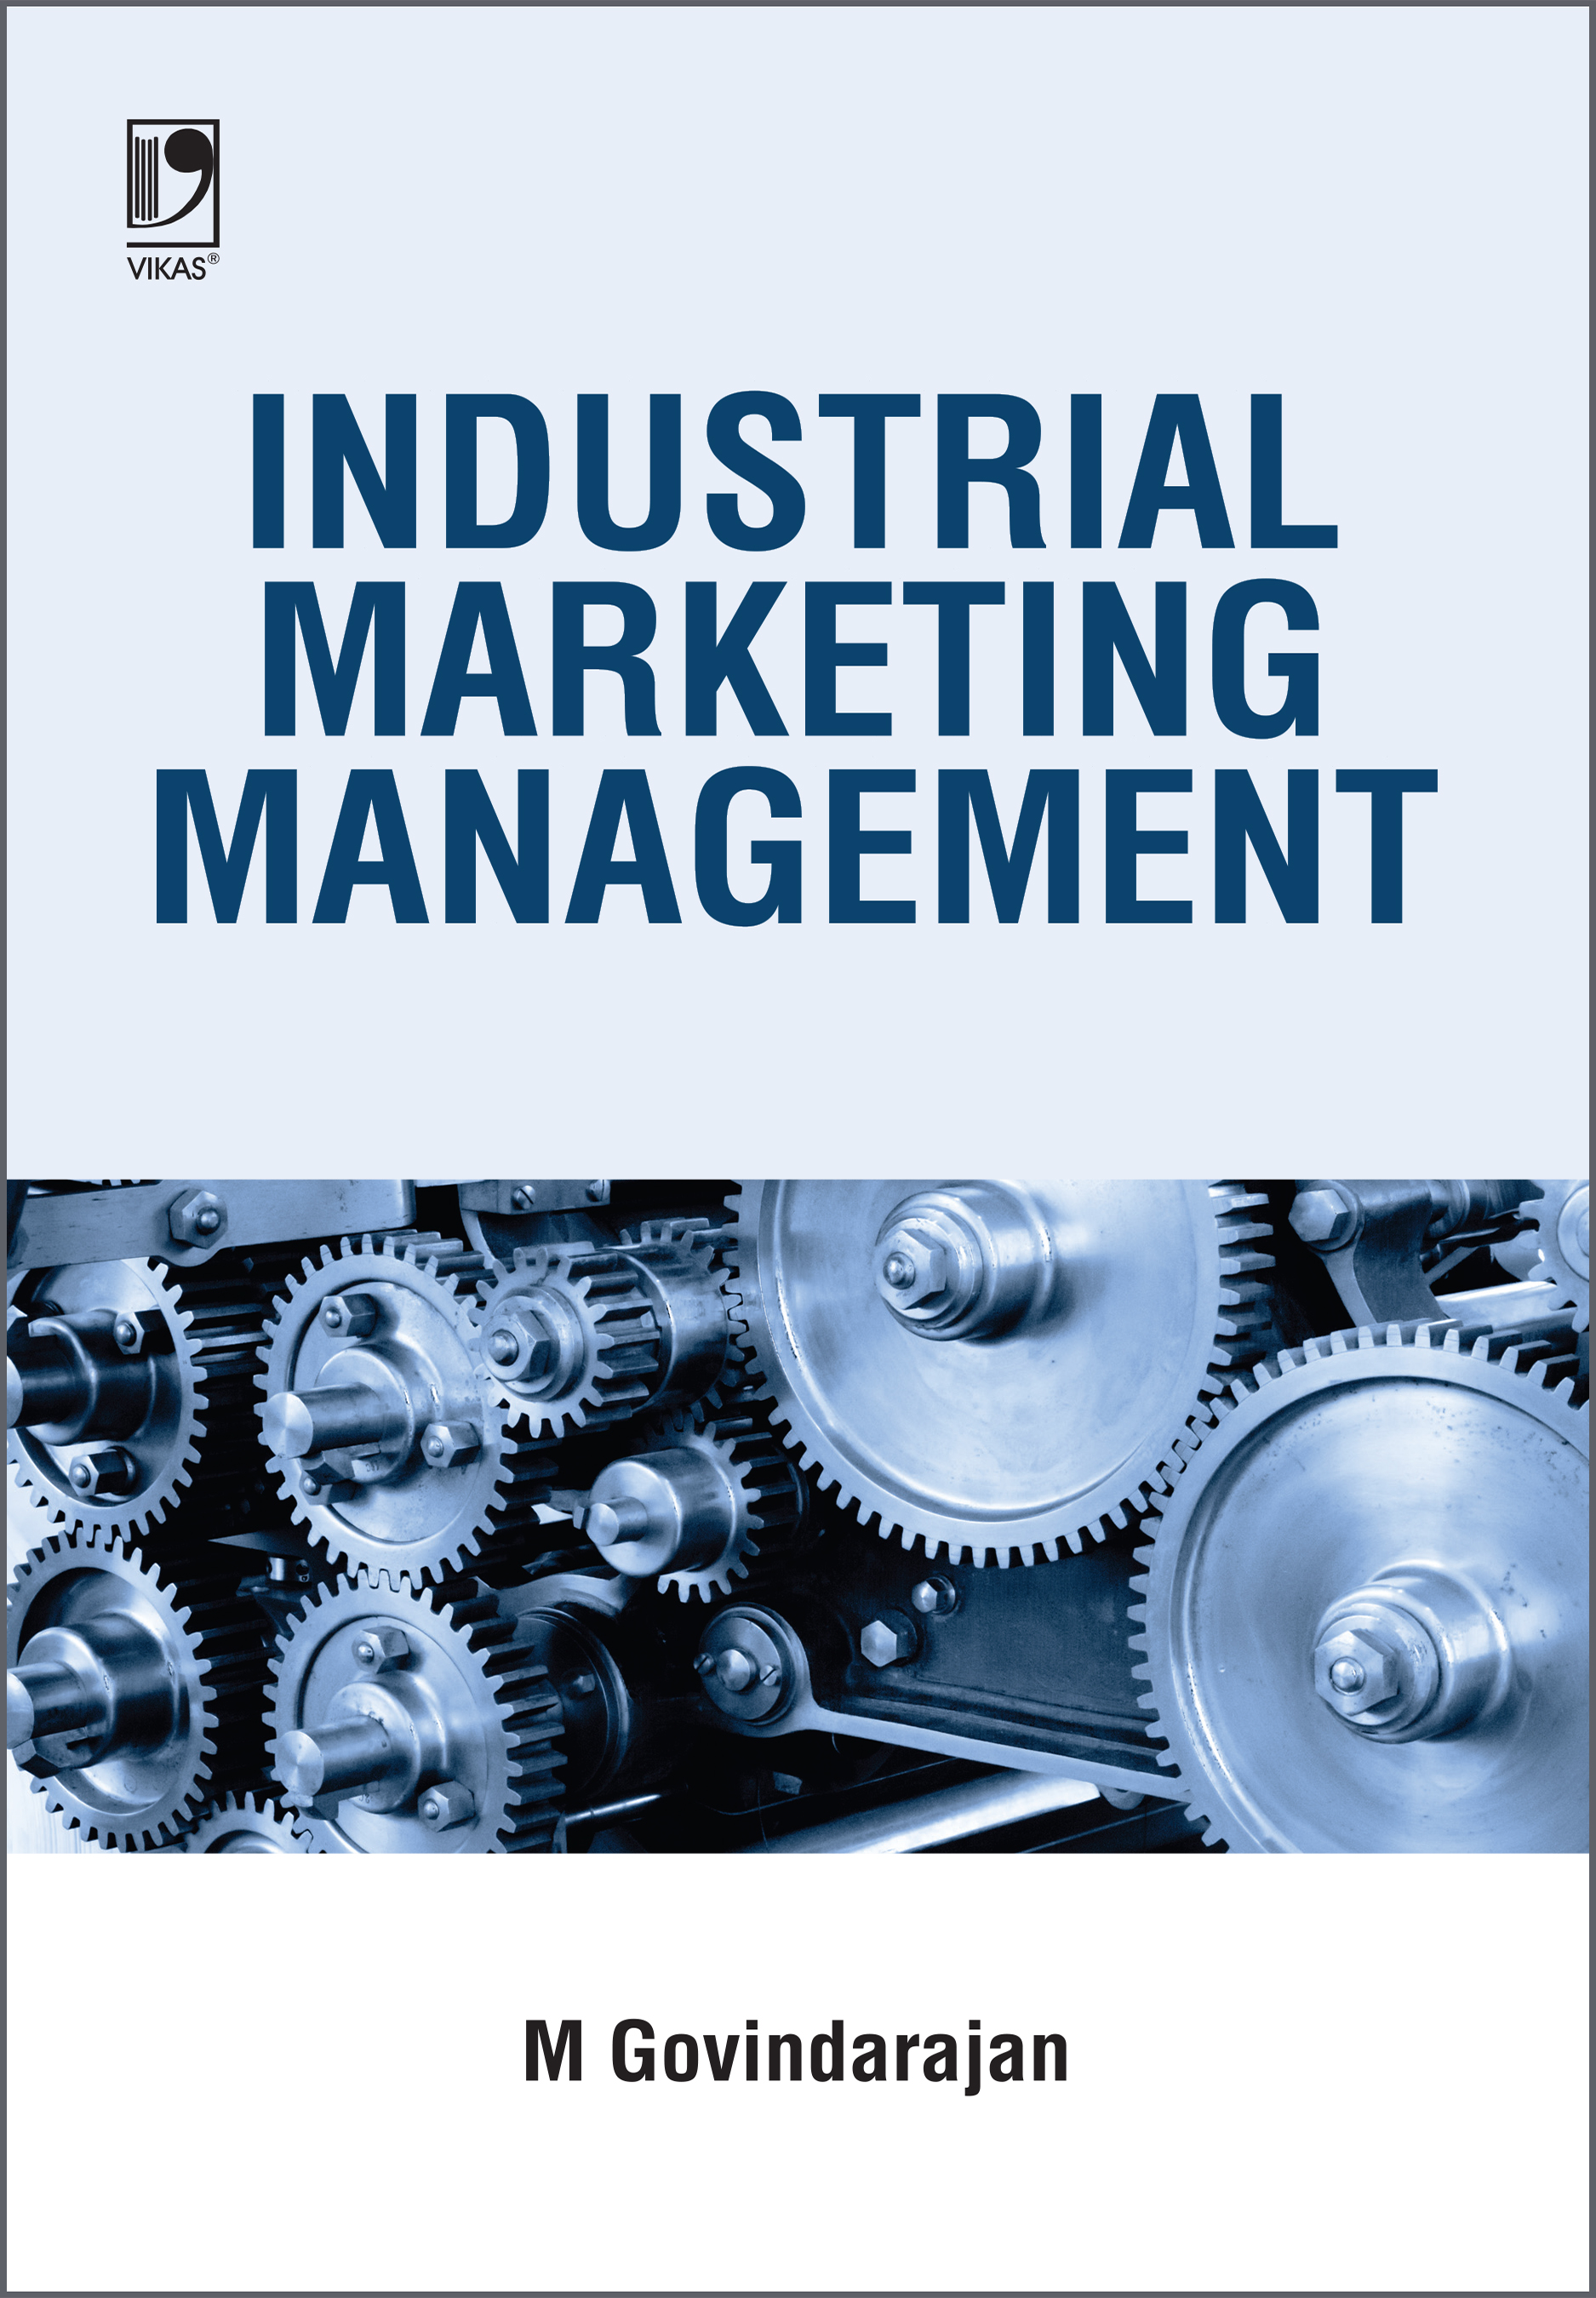 Industrial Marketing Management by  M. Govindarajan